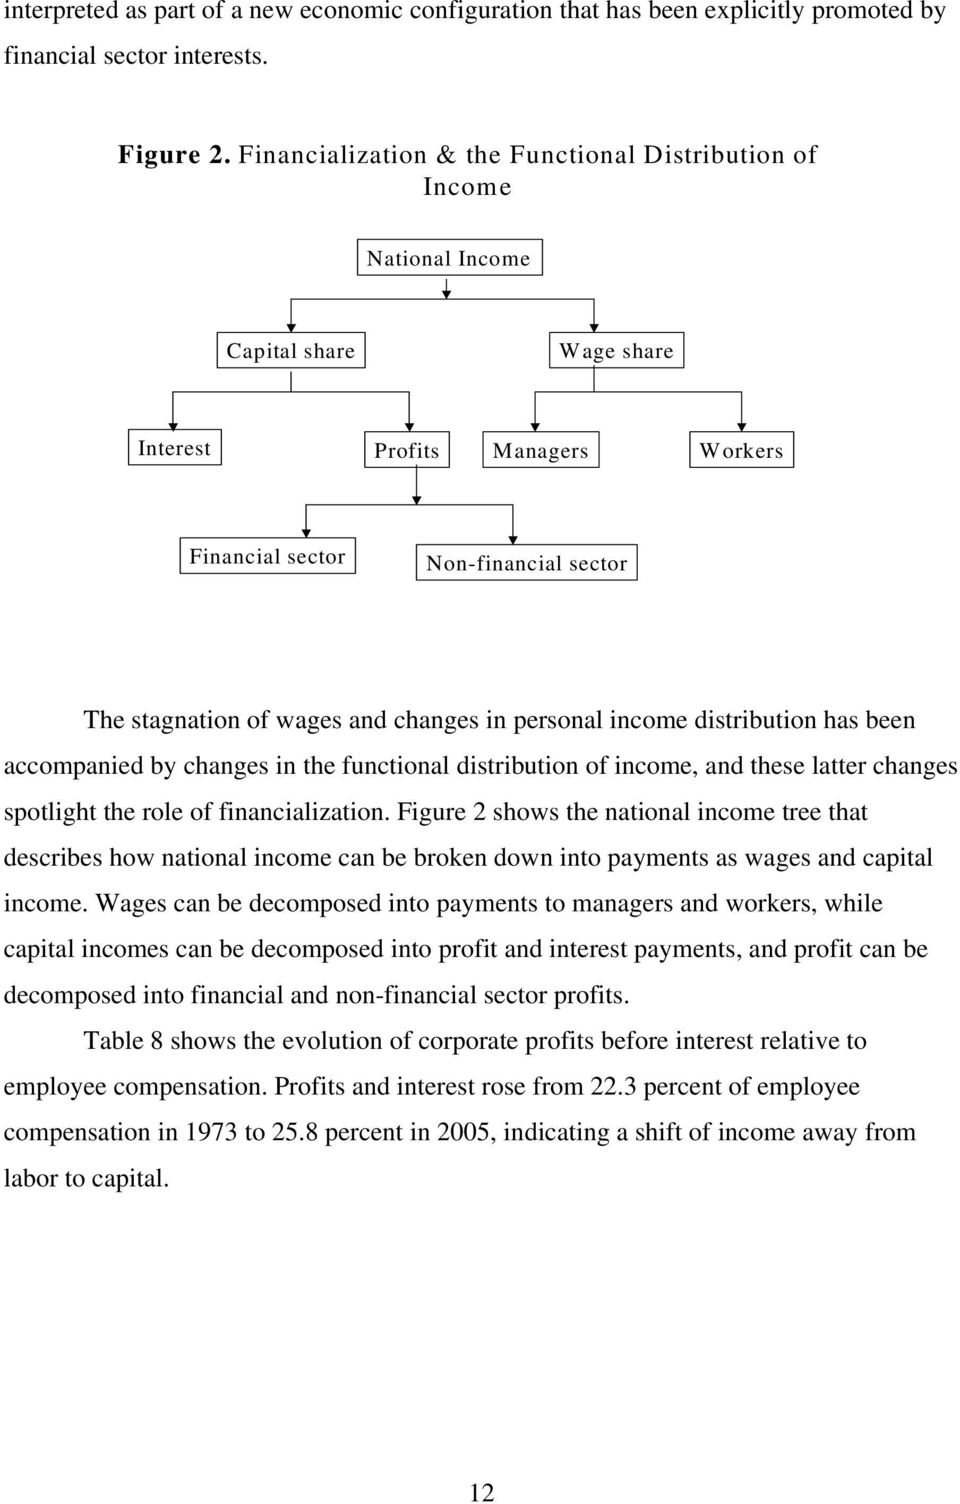 changes in personal income distribution has been accompanied by changes in the functional distribution of income, and these latter changes spotlight the role of financialization.